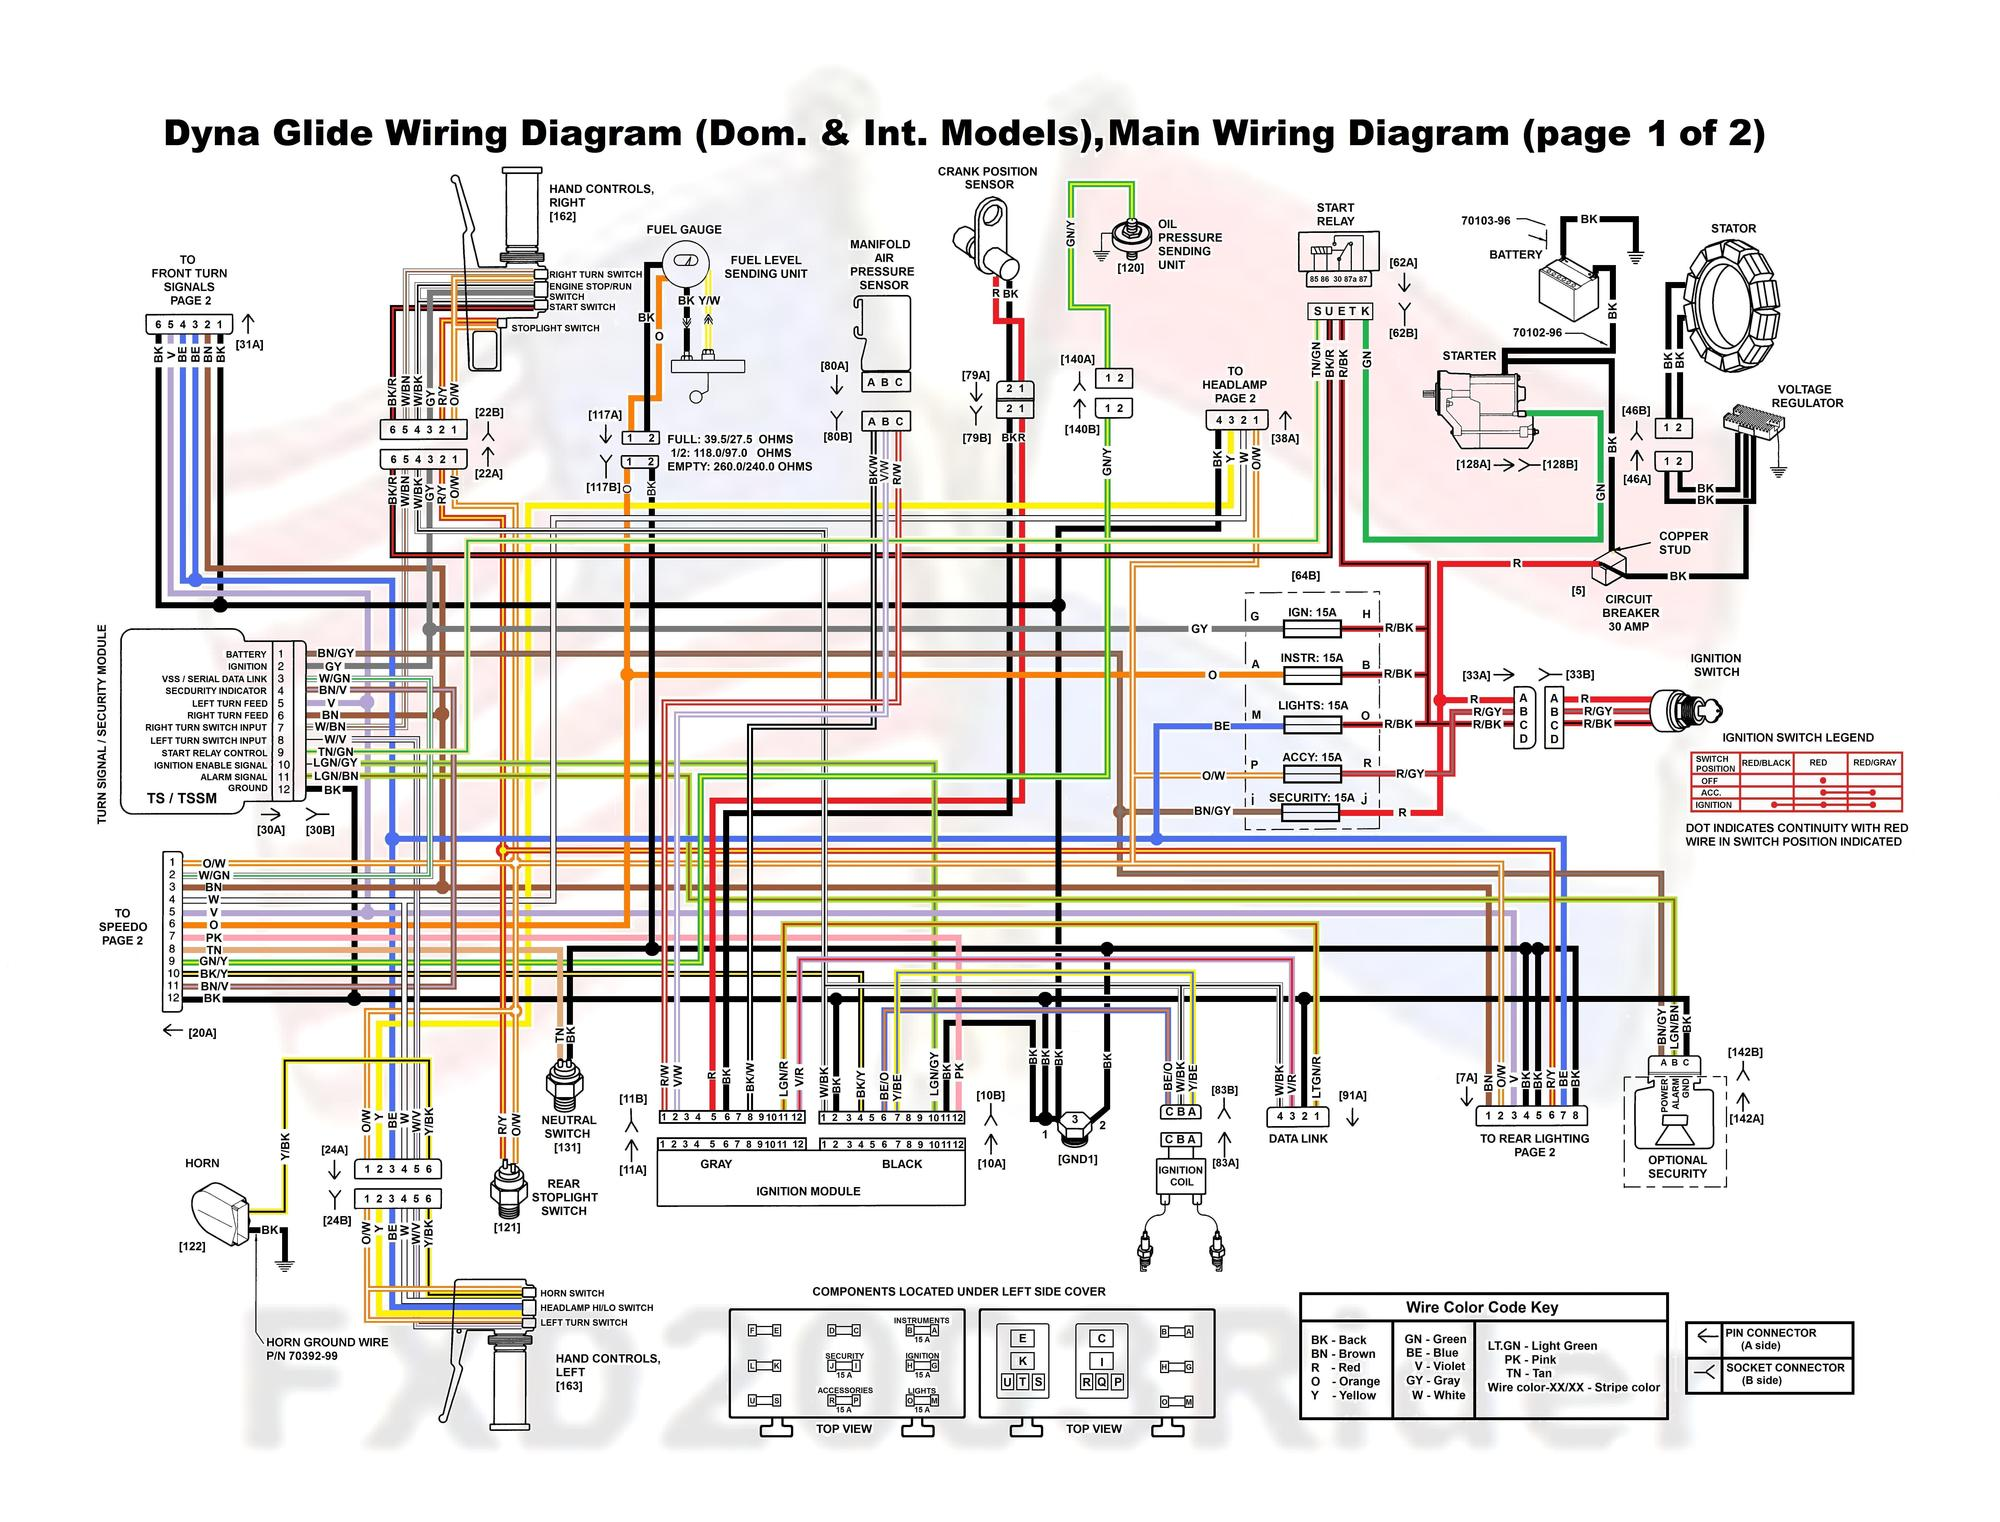 hight resolution of 2005 harley wiring diagram wiring library harris wiring diagram 2005 harley fxd i dyna wiring diagram